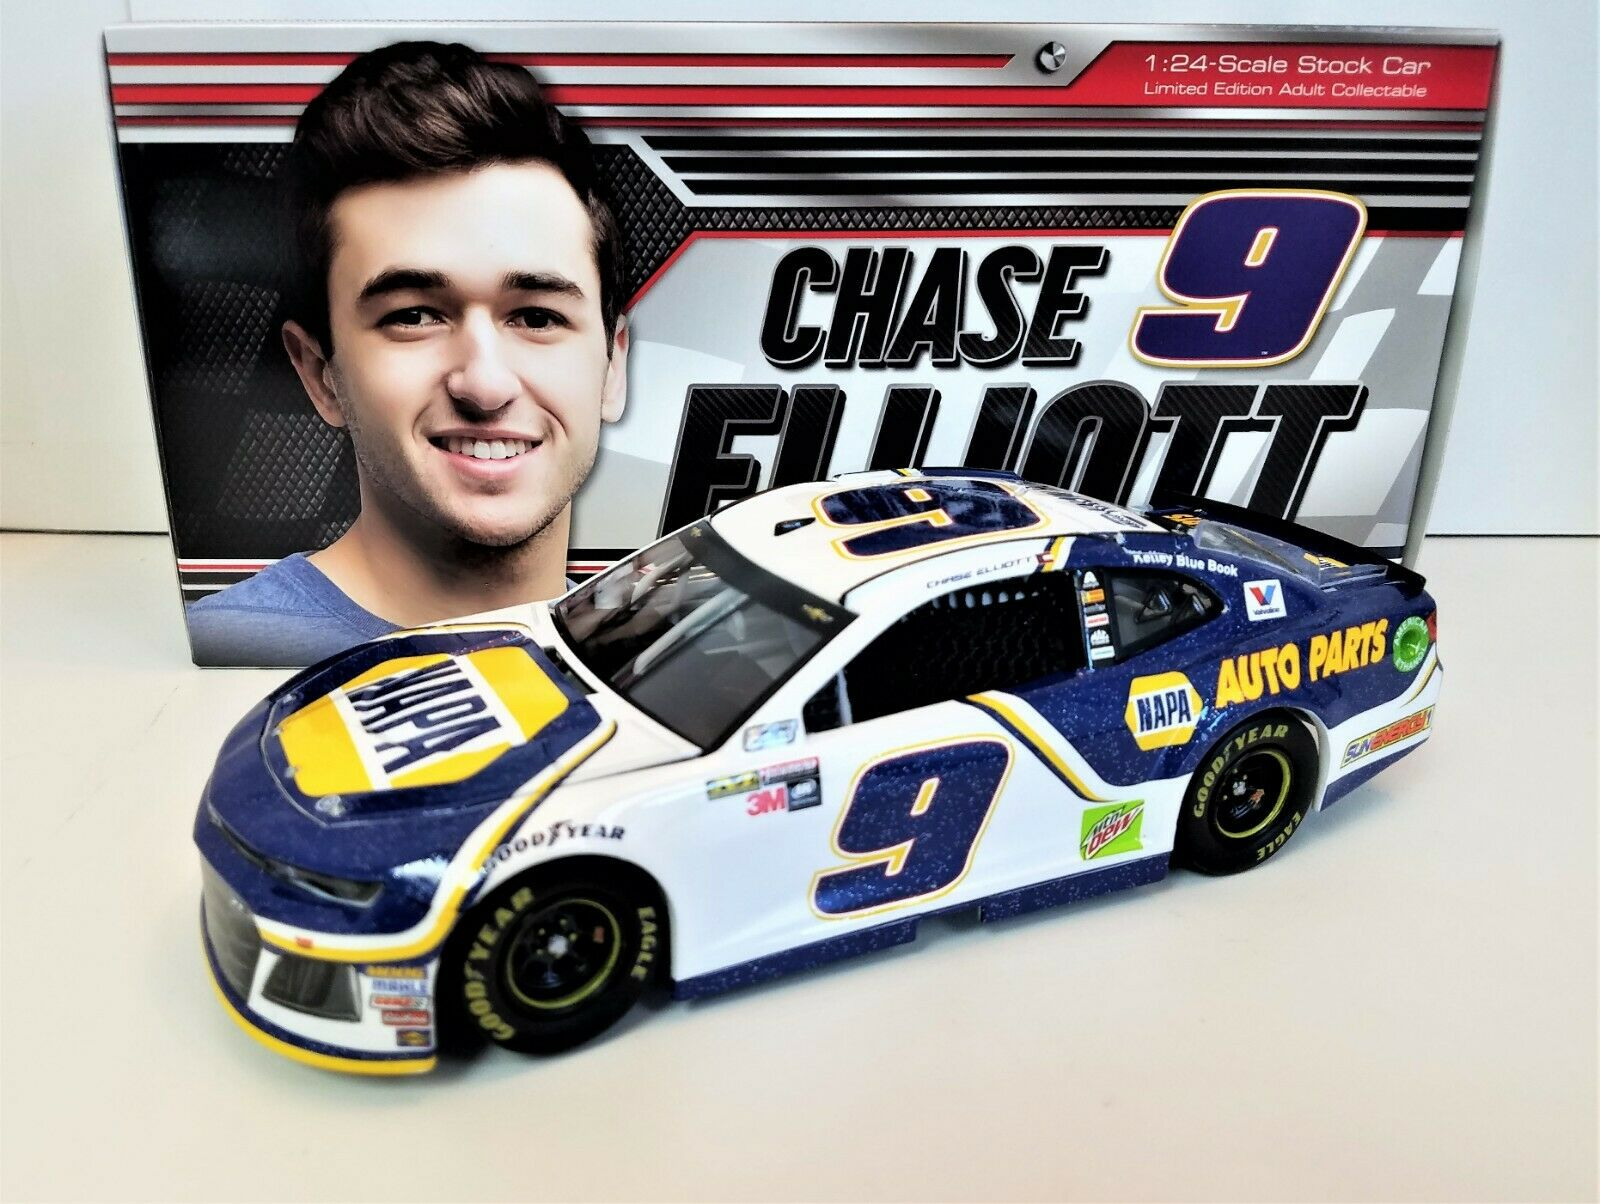 2018 Chase Elliott NAPA 1 24 Scale HO - 1ST YEAR CUP SERIES CAR IN THE